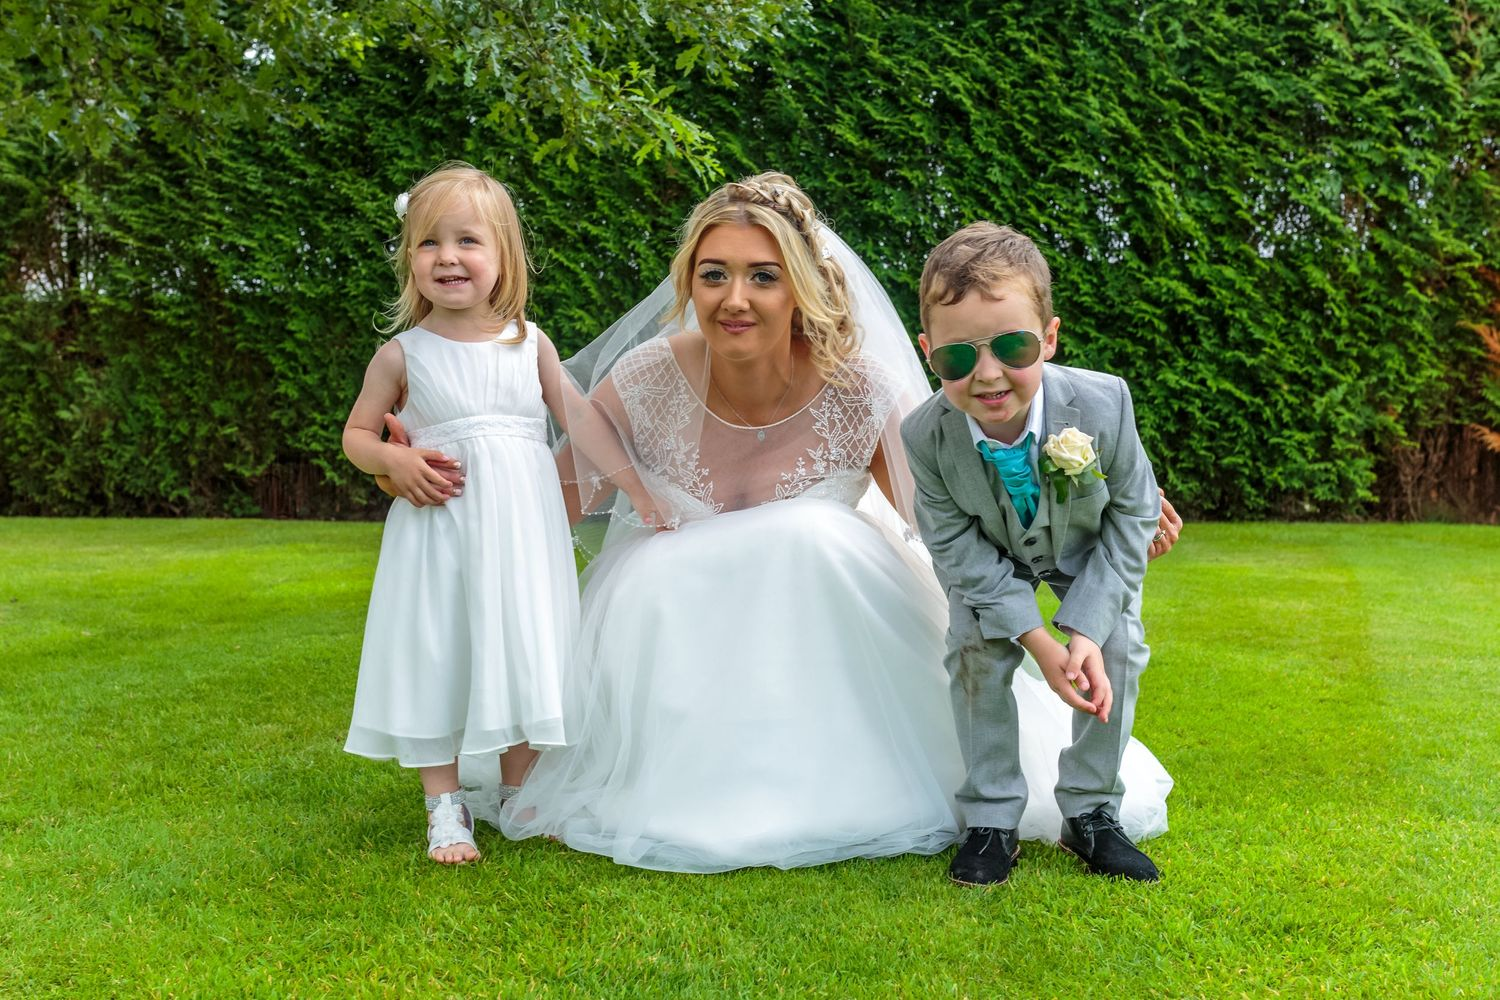 bride crouches down for a photograph with the little flower girl and the page boy wearing mirrored sunglasses